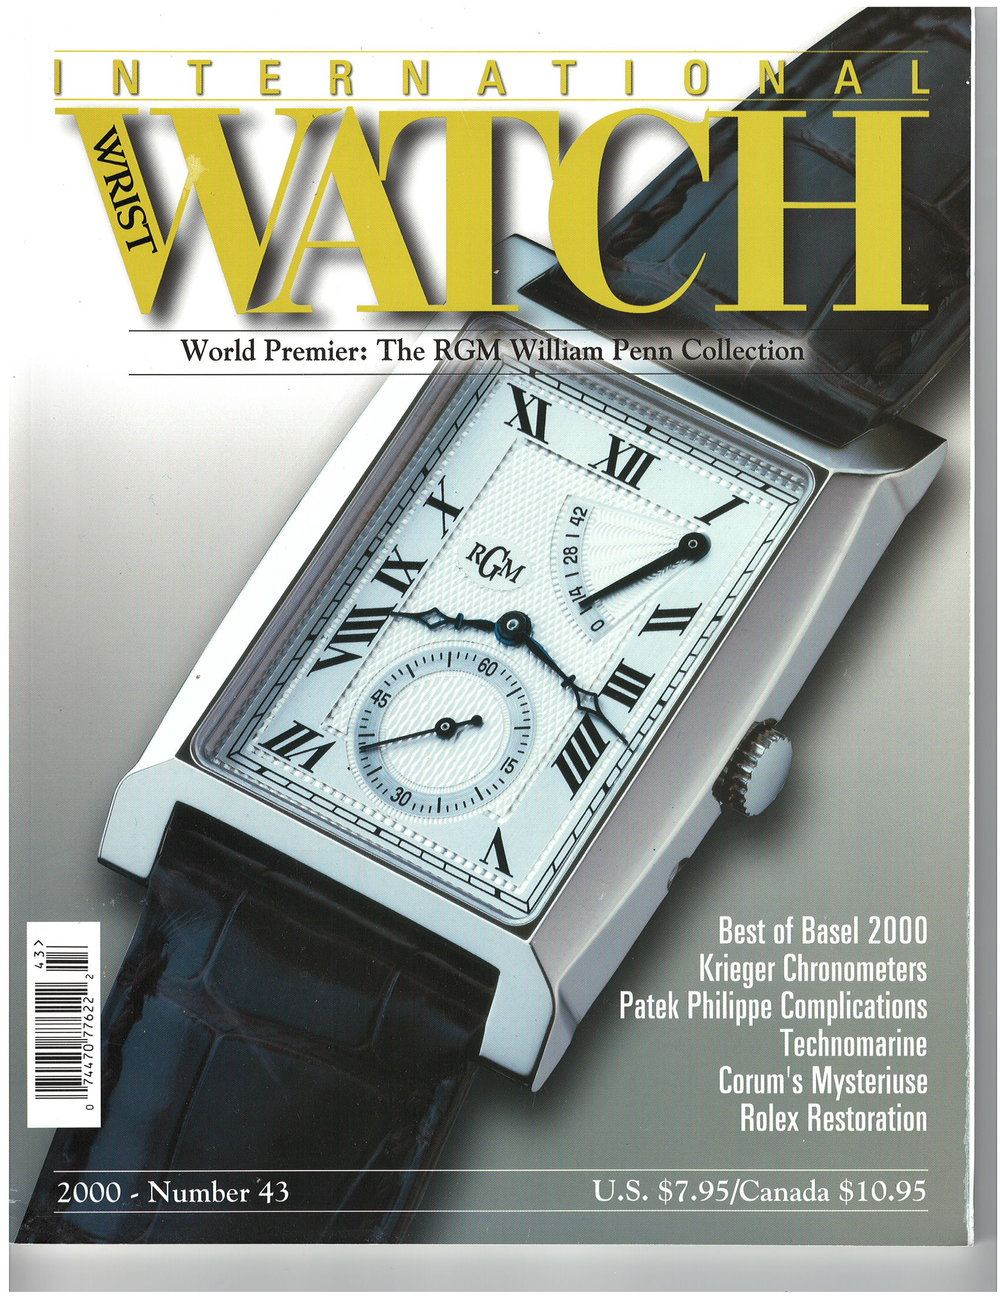 IW Magazine from the year 2000